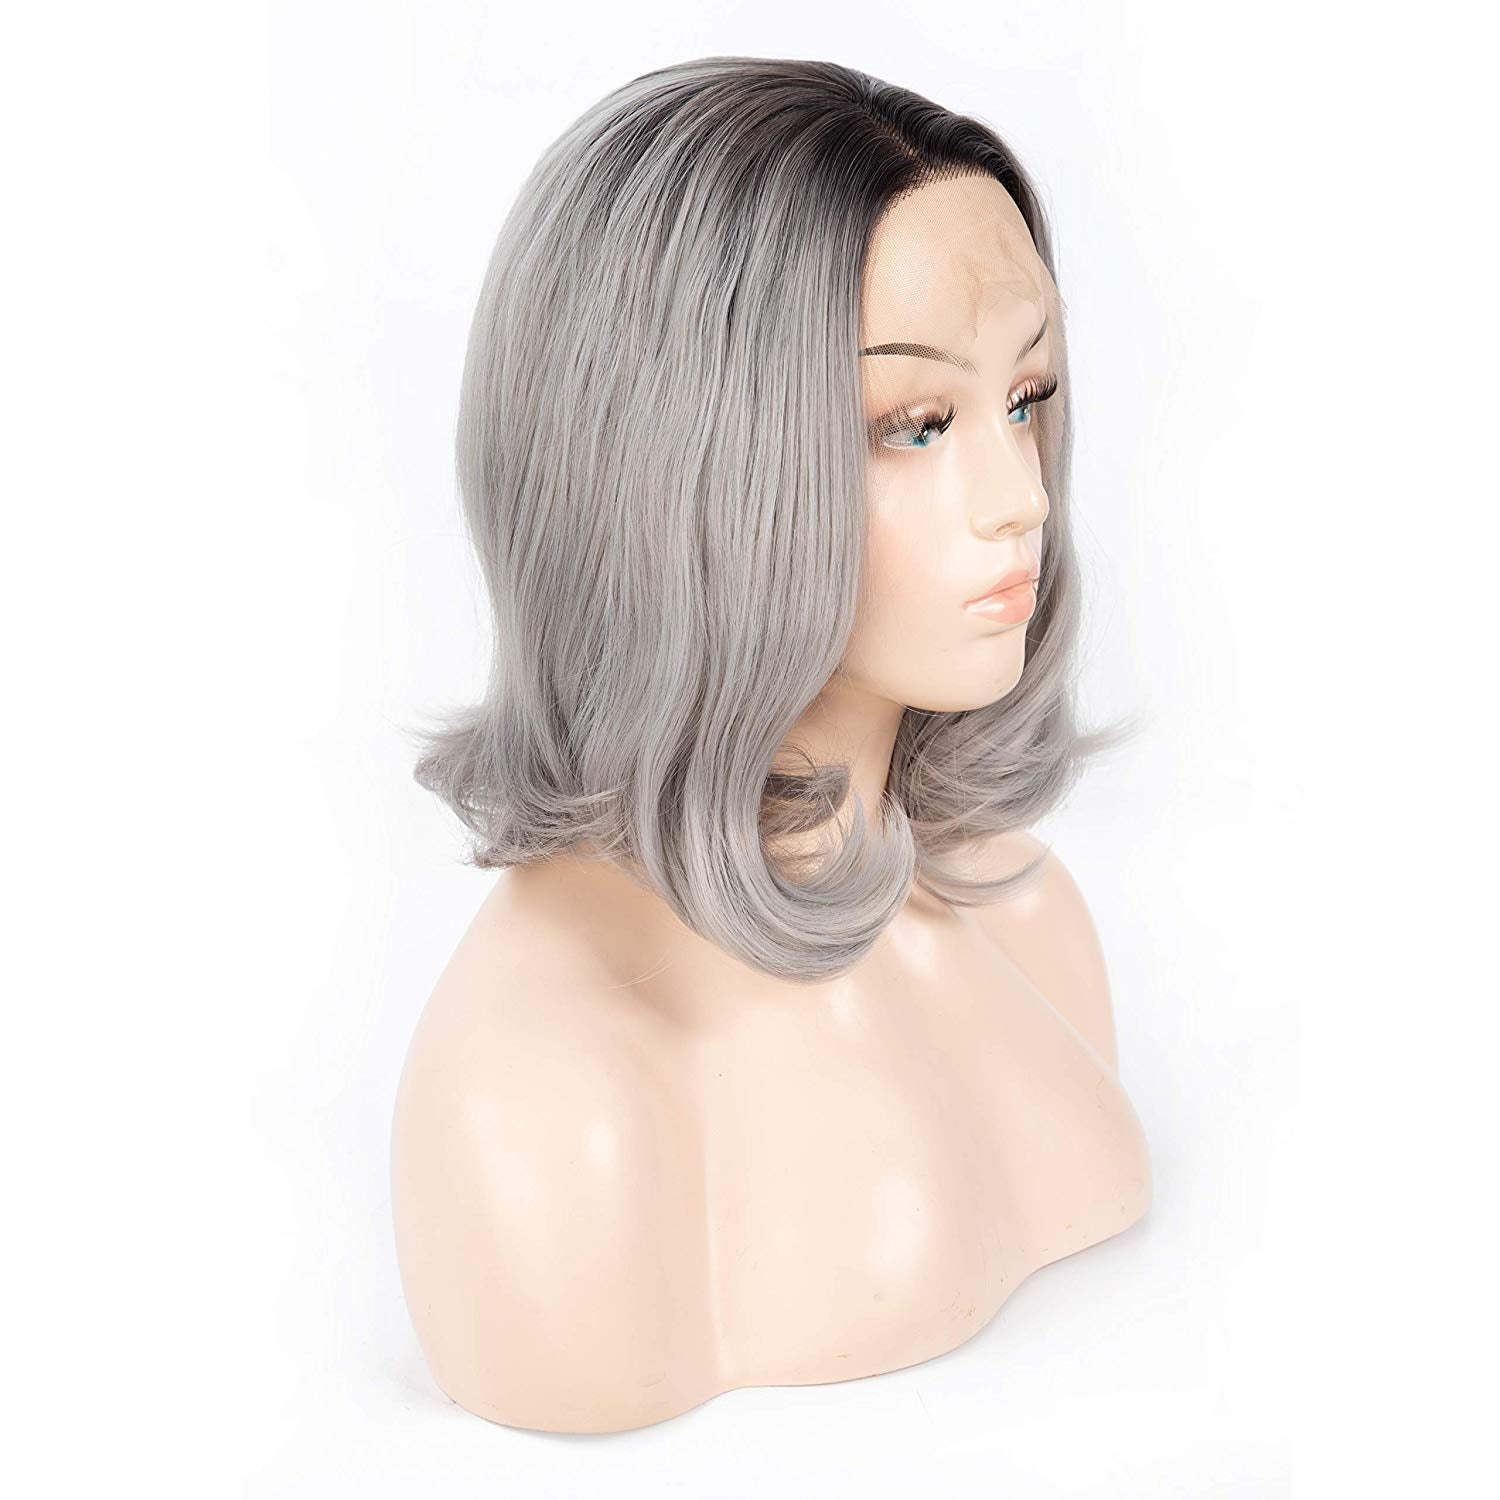 12 Inch Short Ombre Silver Grey Curly Synthetic Wig With Side Part Machine Made